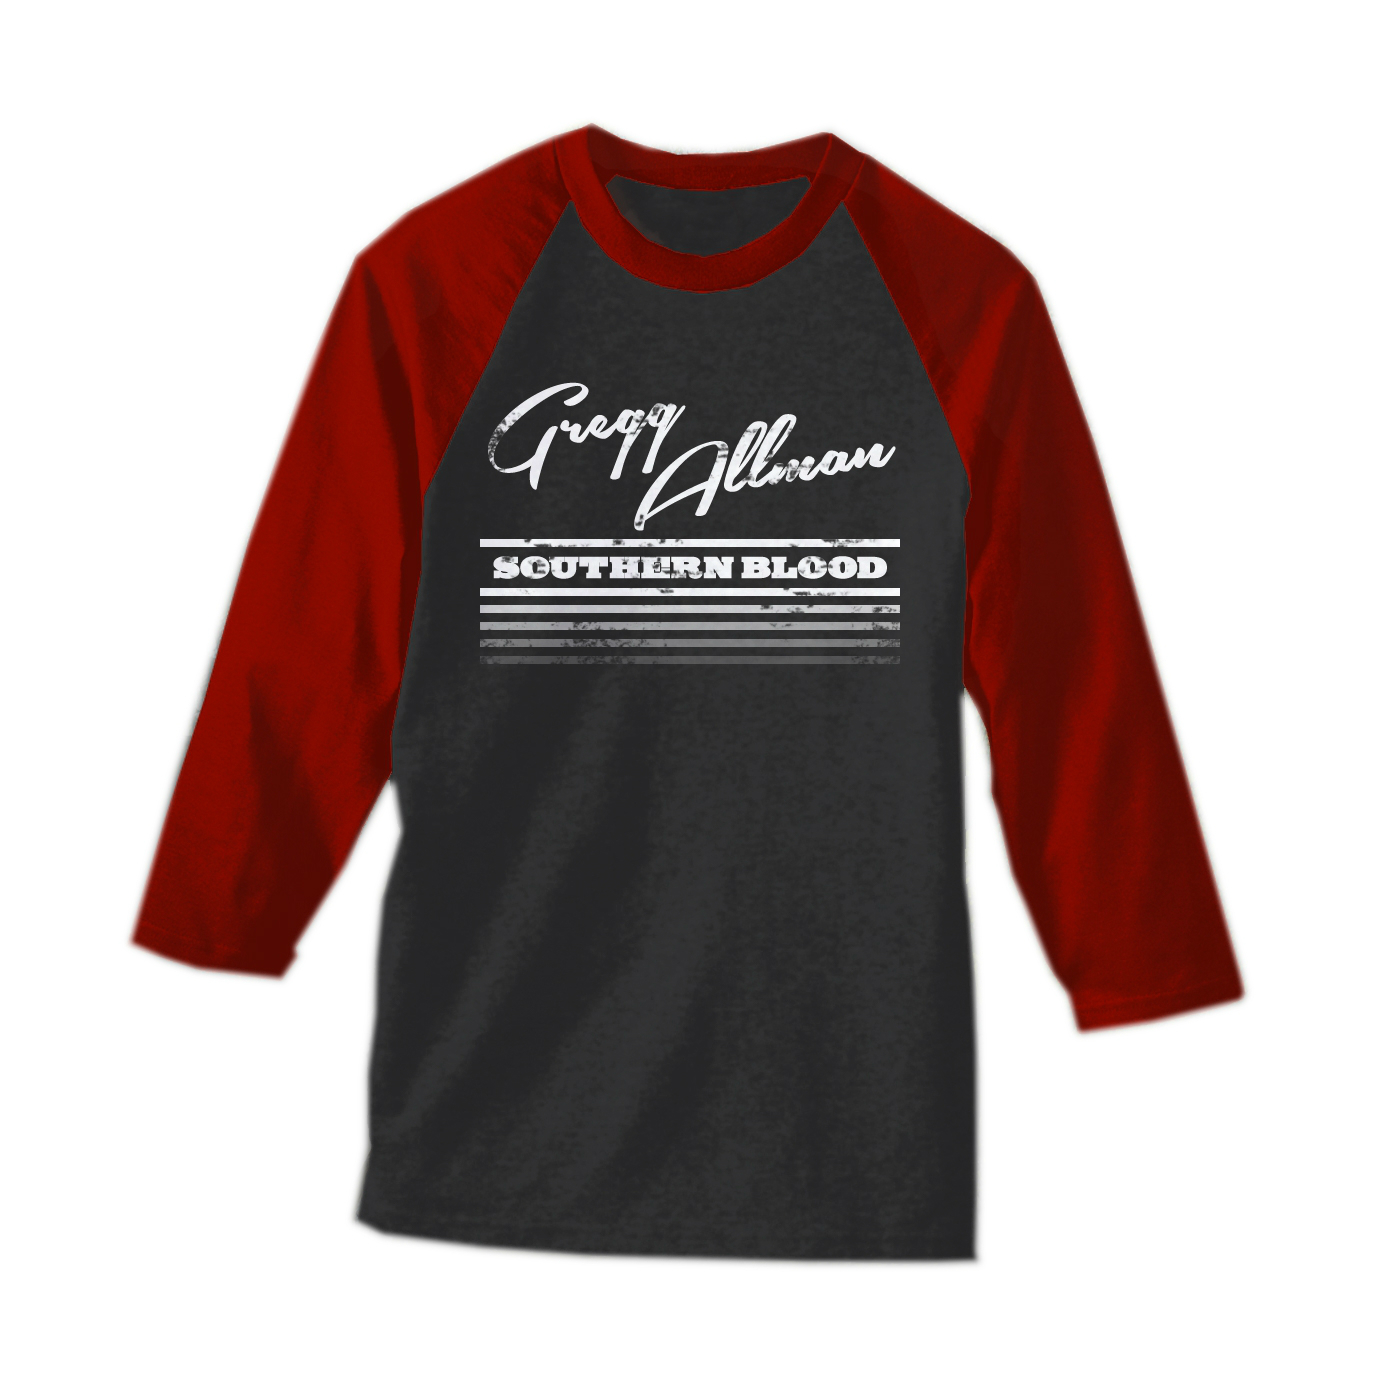 Southern Blood Baseball 3/4 Sleeve T-Shirt